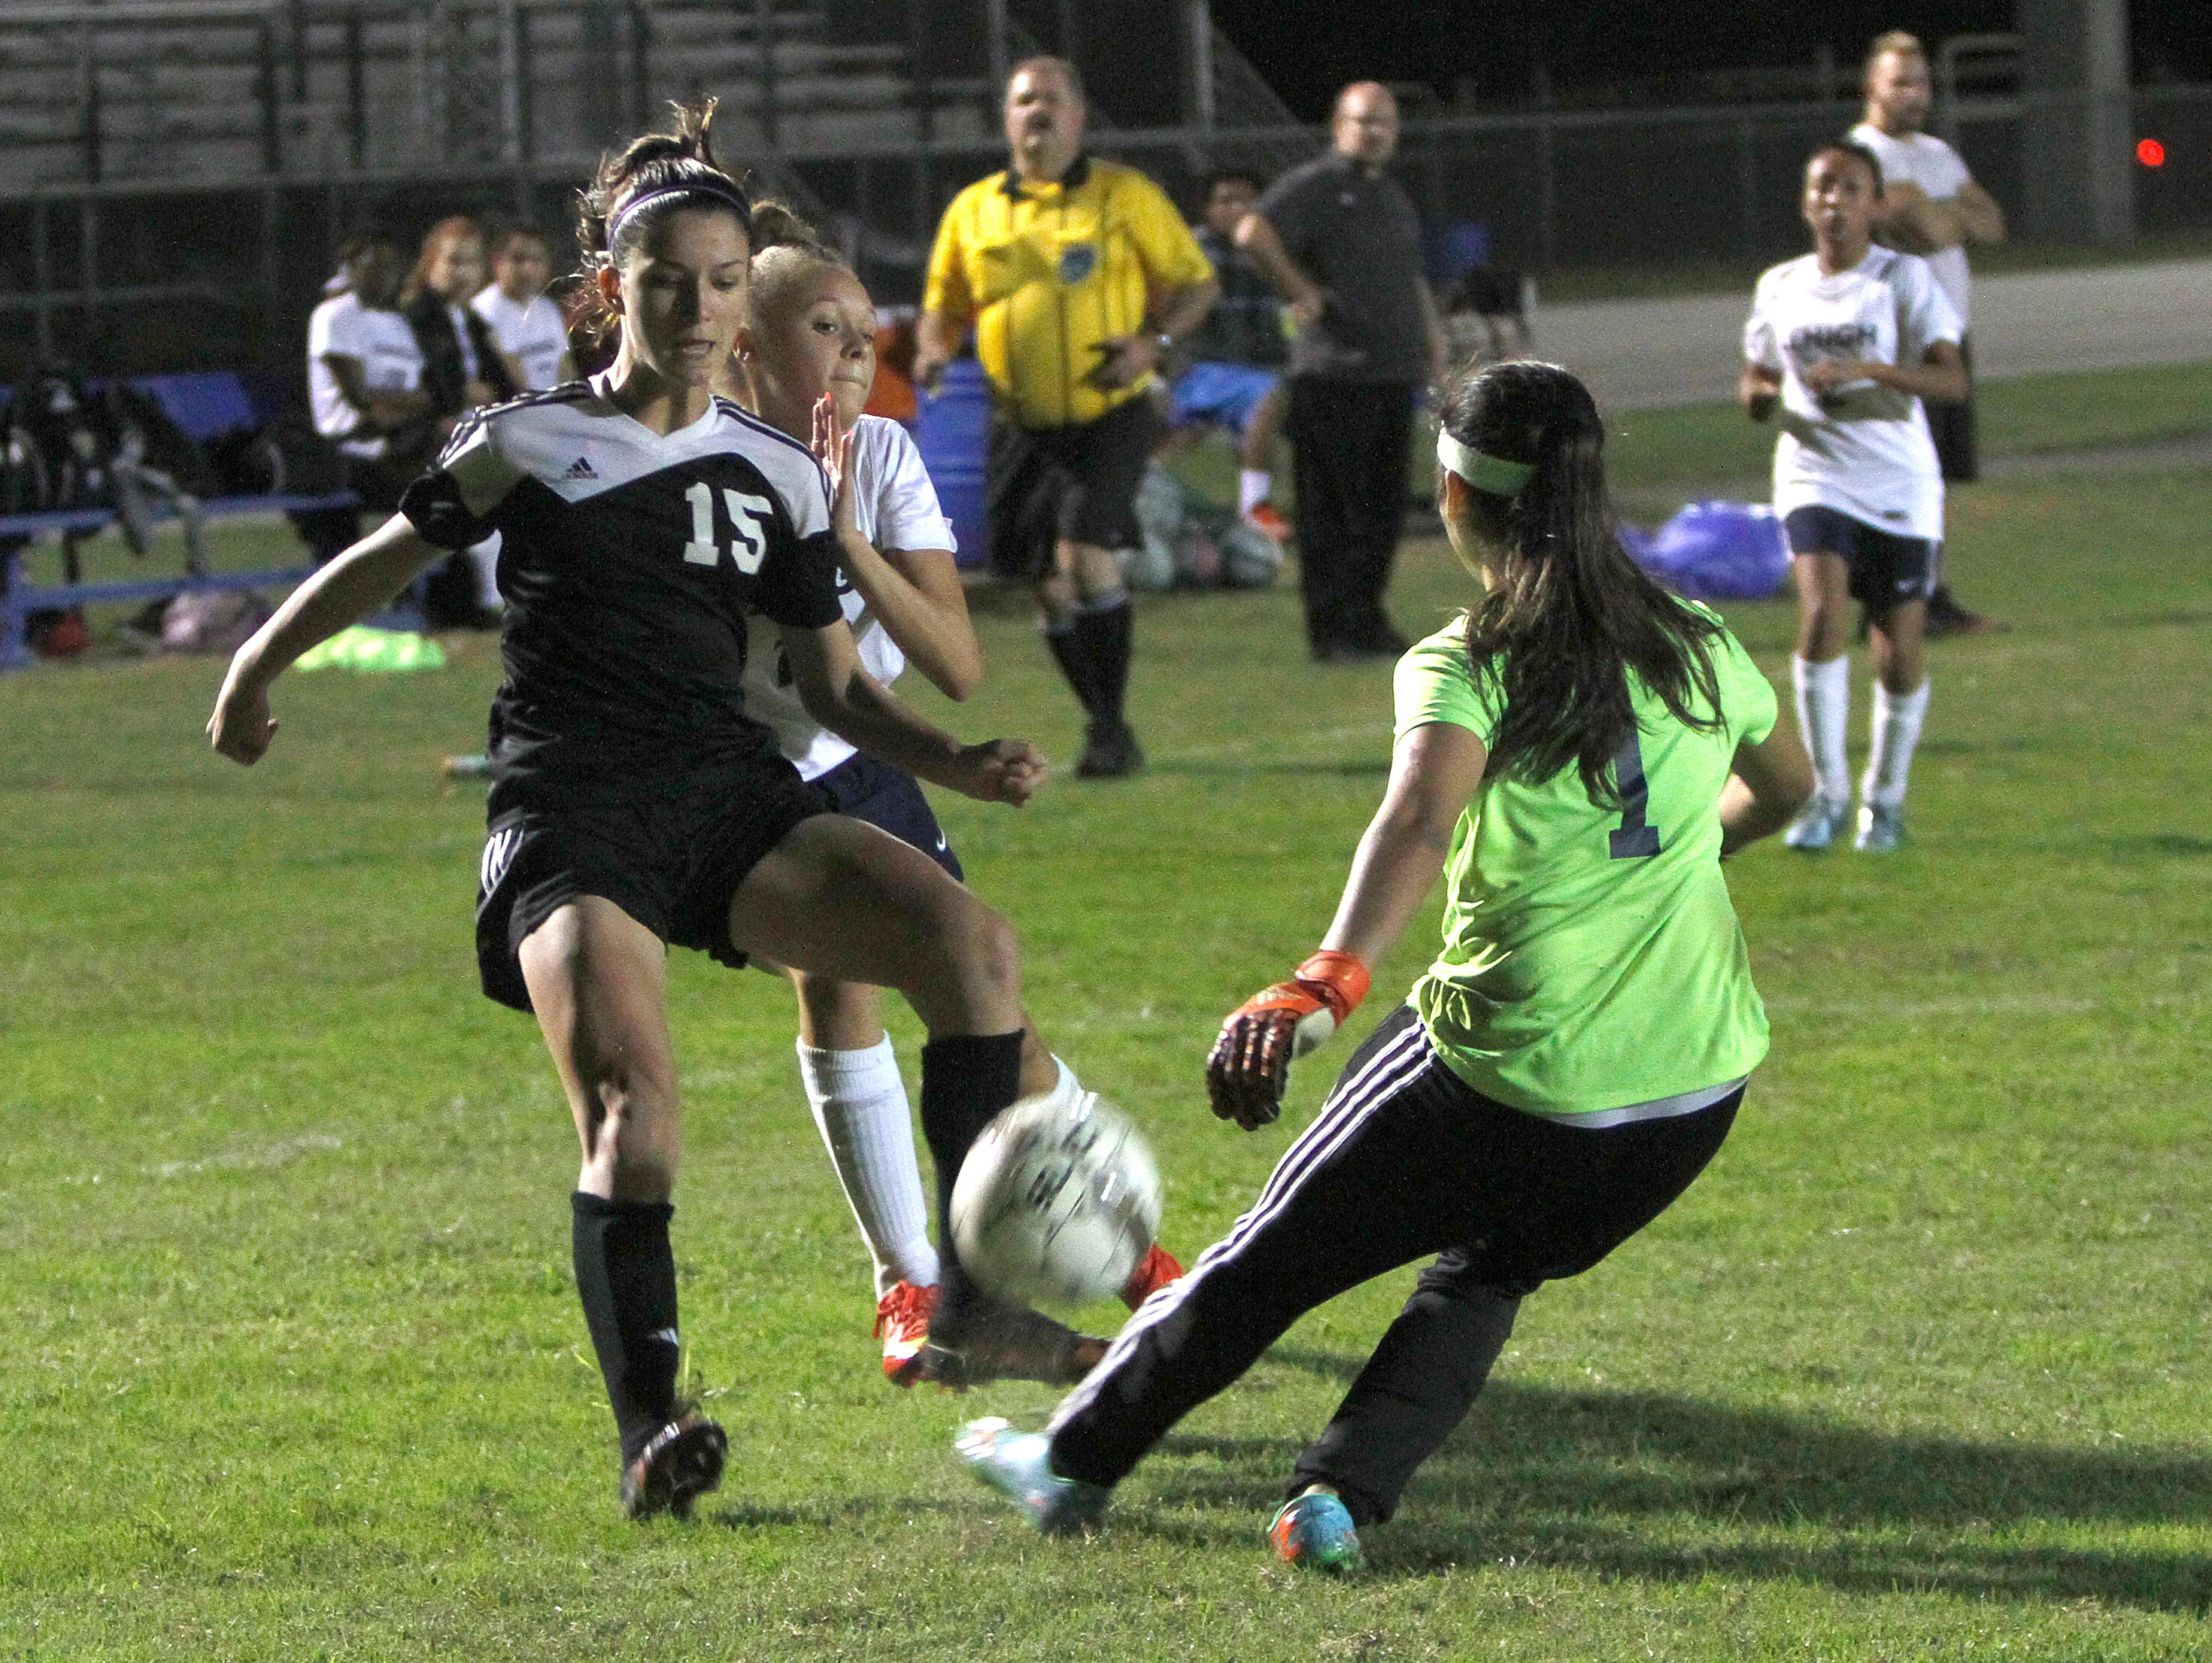 Mariner's Taylor Yount and Lehigh's Jessica White and Aileen Soto fight for possession Thursday in Lehigh Acres.